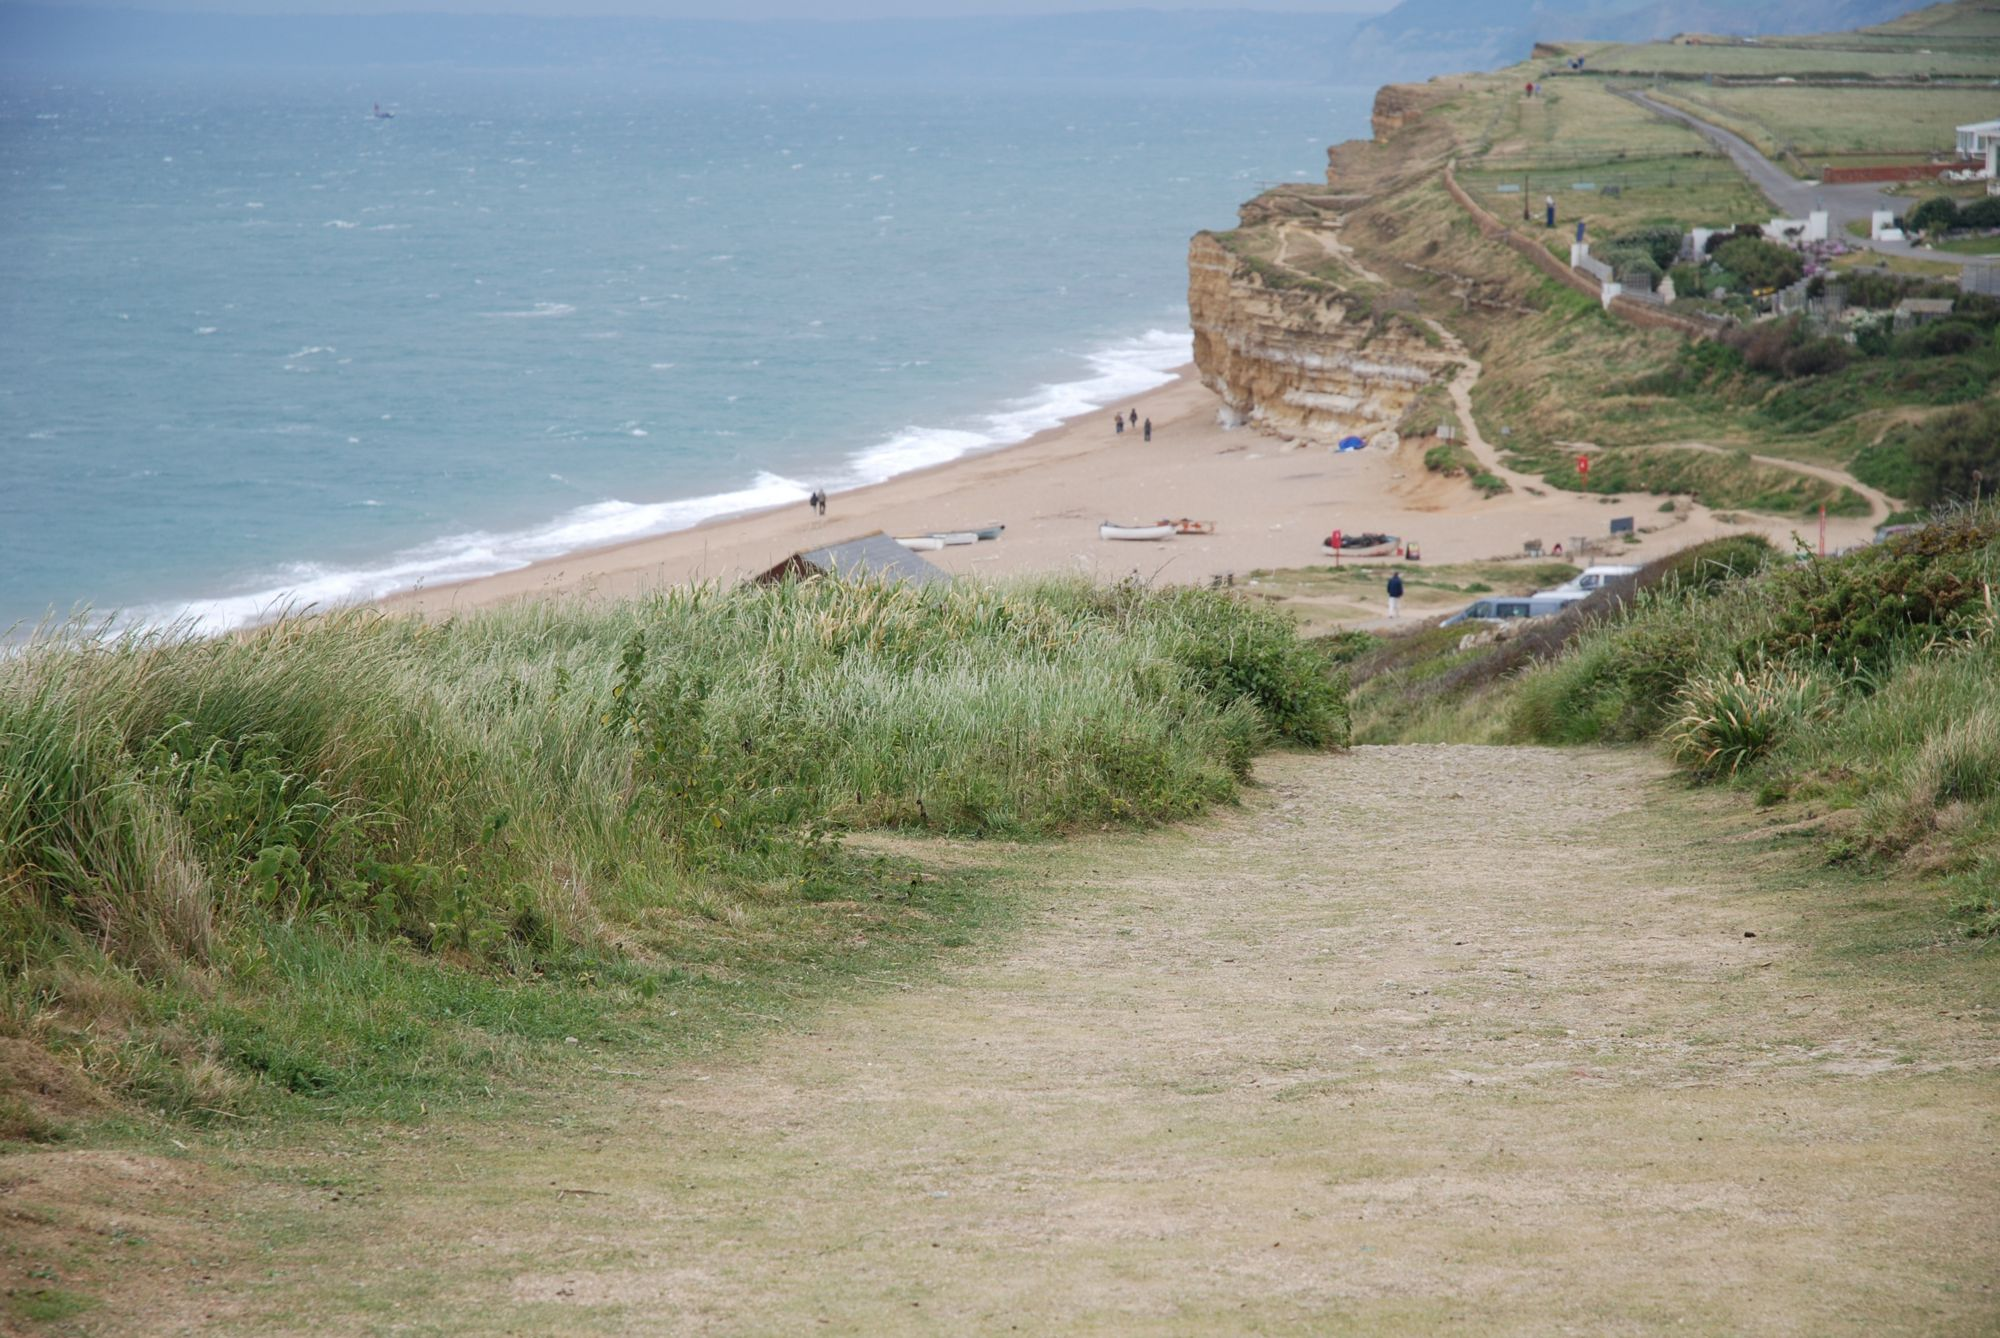 Hotels, Cottages, B&Bs & Glamping in West Dorset